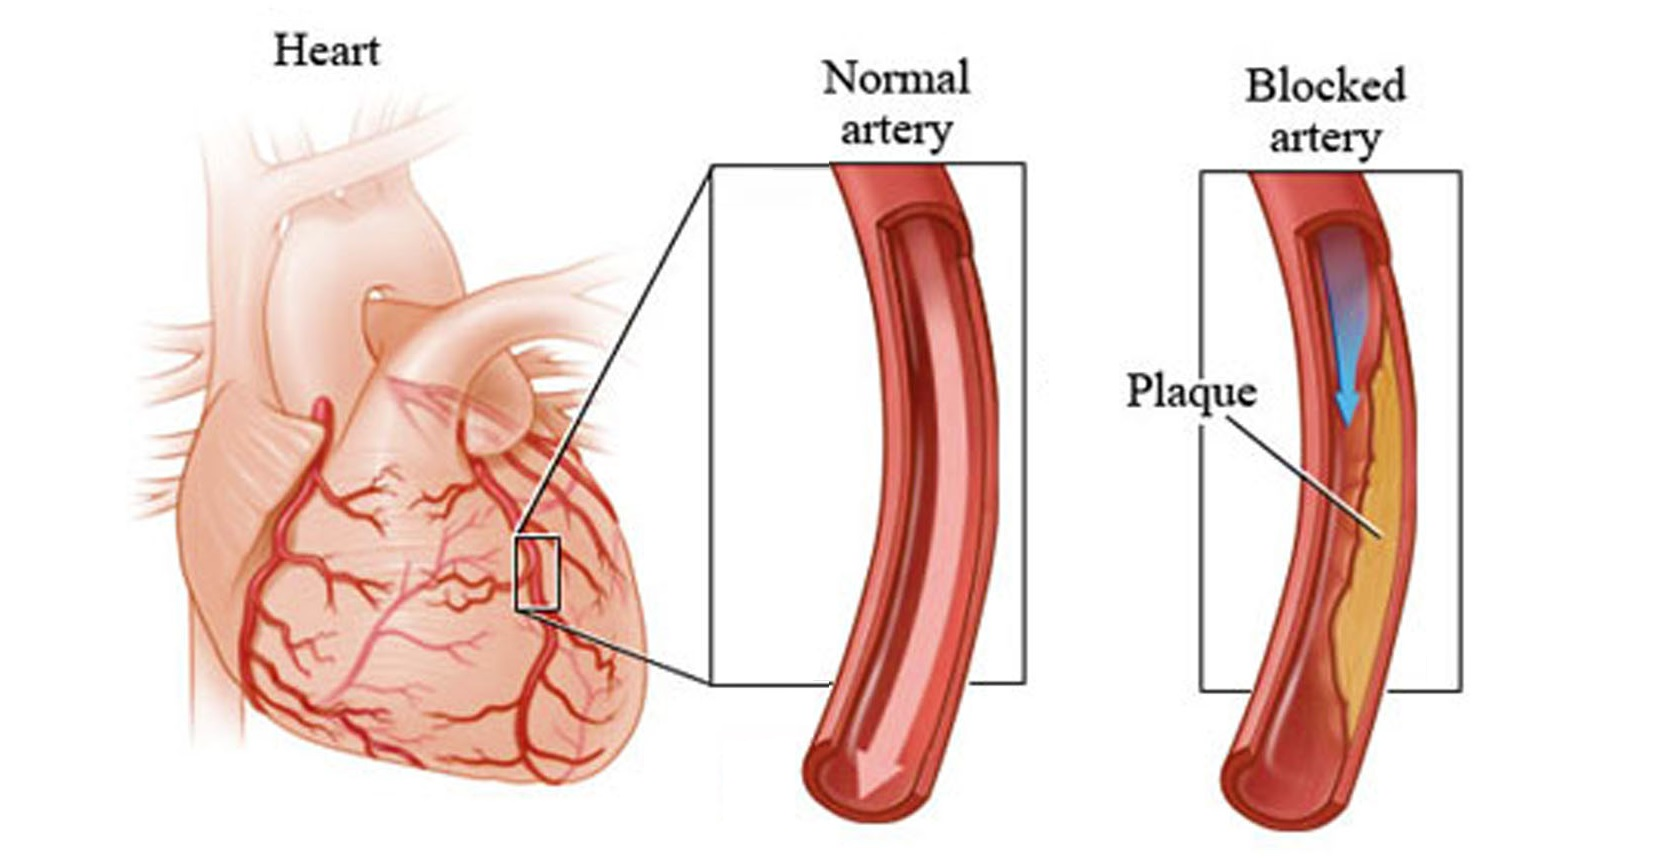 7 Early Warning Signs Of Heart Attack You Shouldn't Ignore